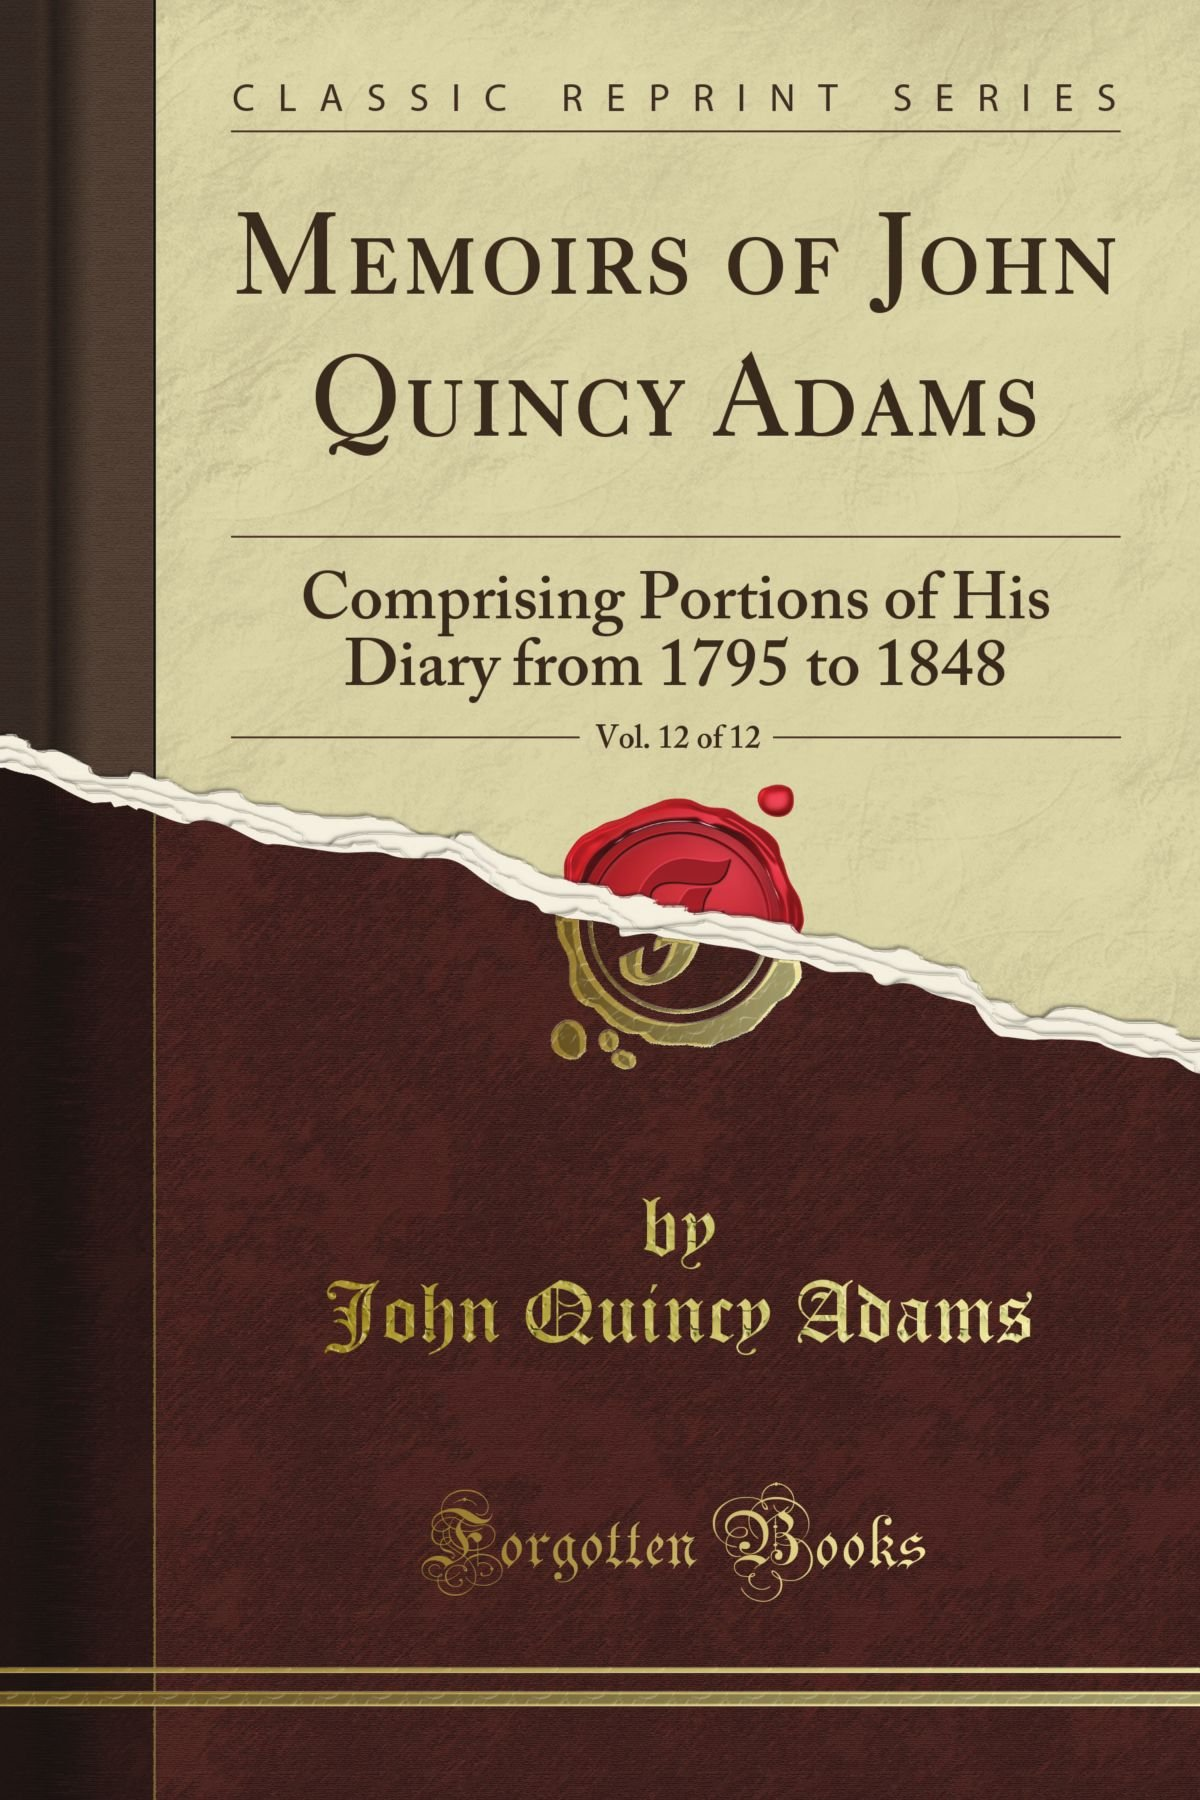 Download Memoirs of John Quincy Adams, Vol. 12 of 12: Comprising Portions of His Diary from 1795 to 1848 (Classic Reprint) ebook